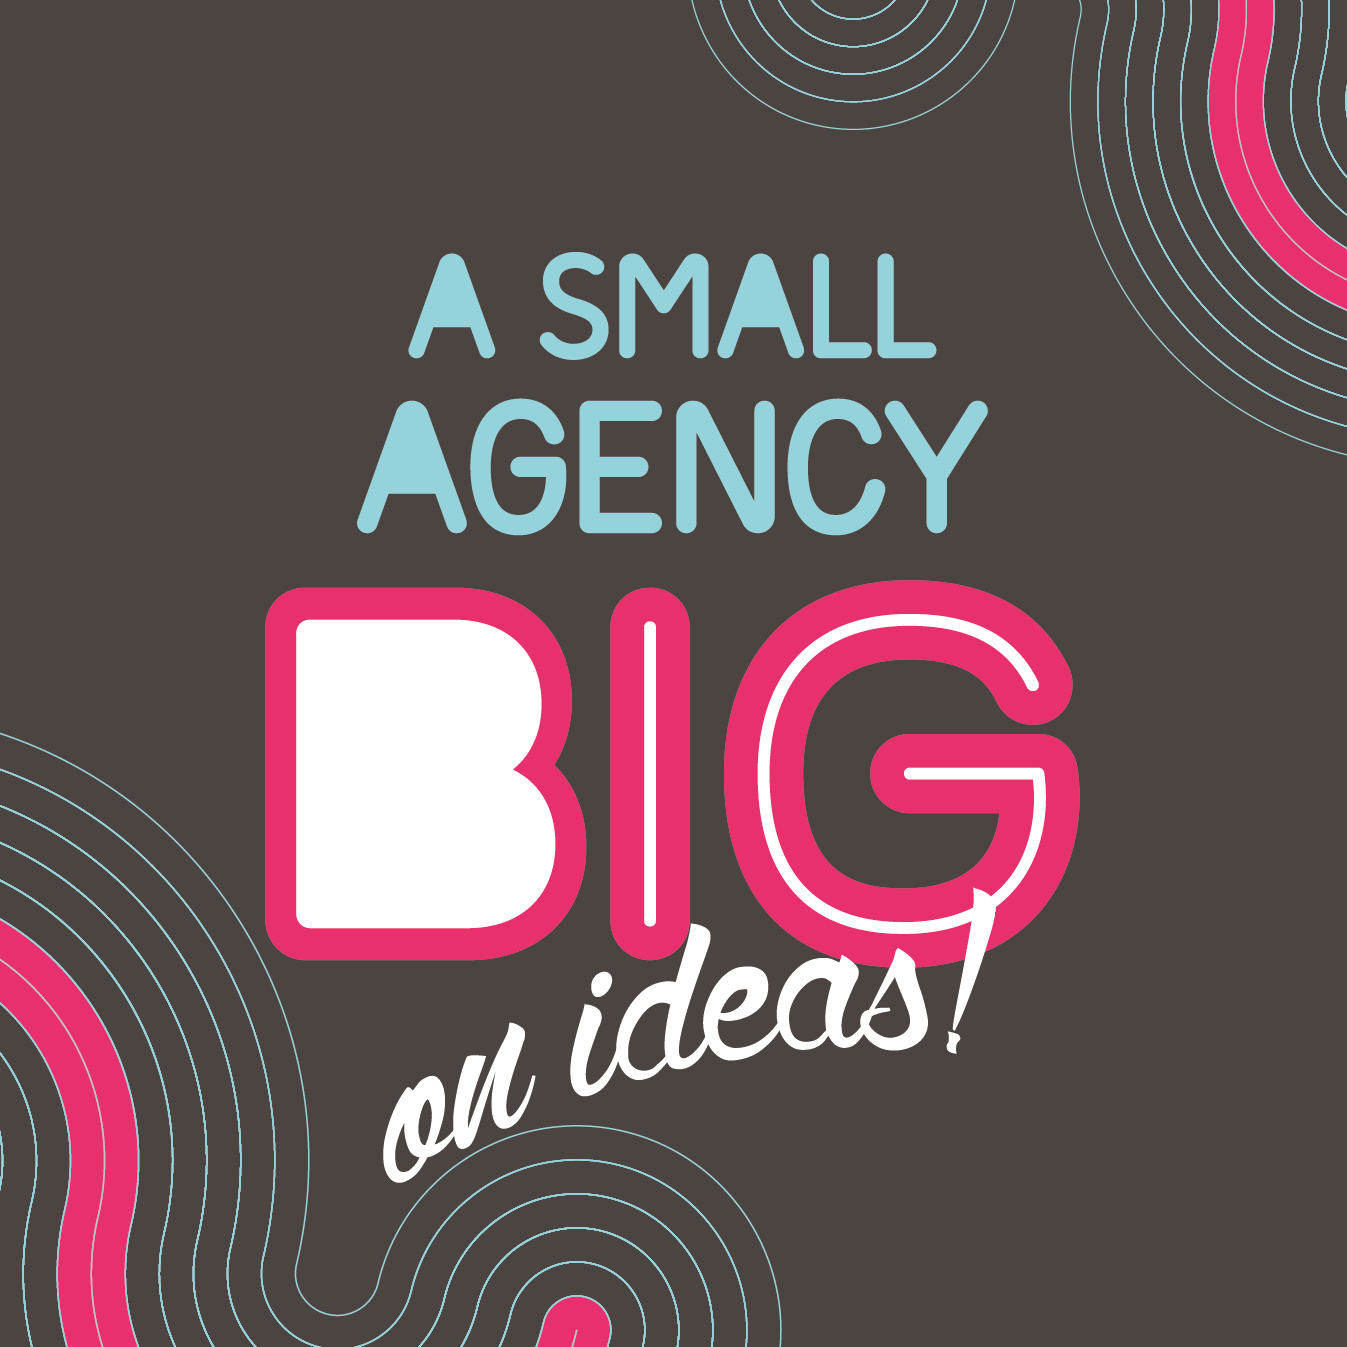 Small agency Big ideas-01.jpg